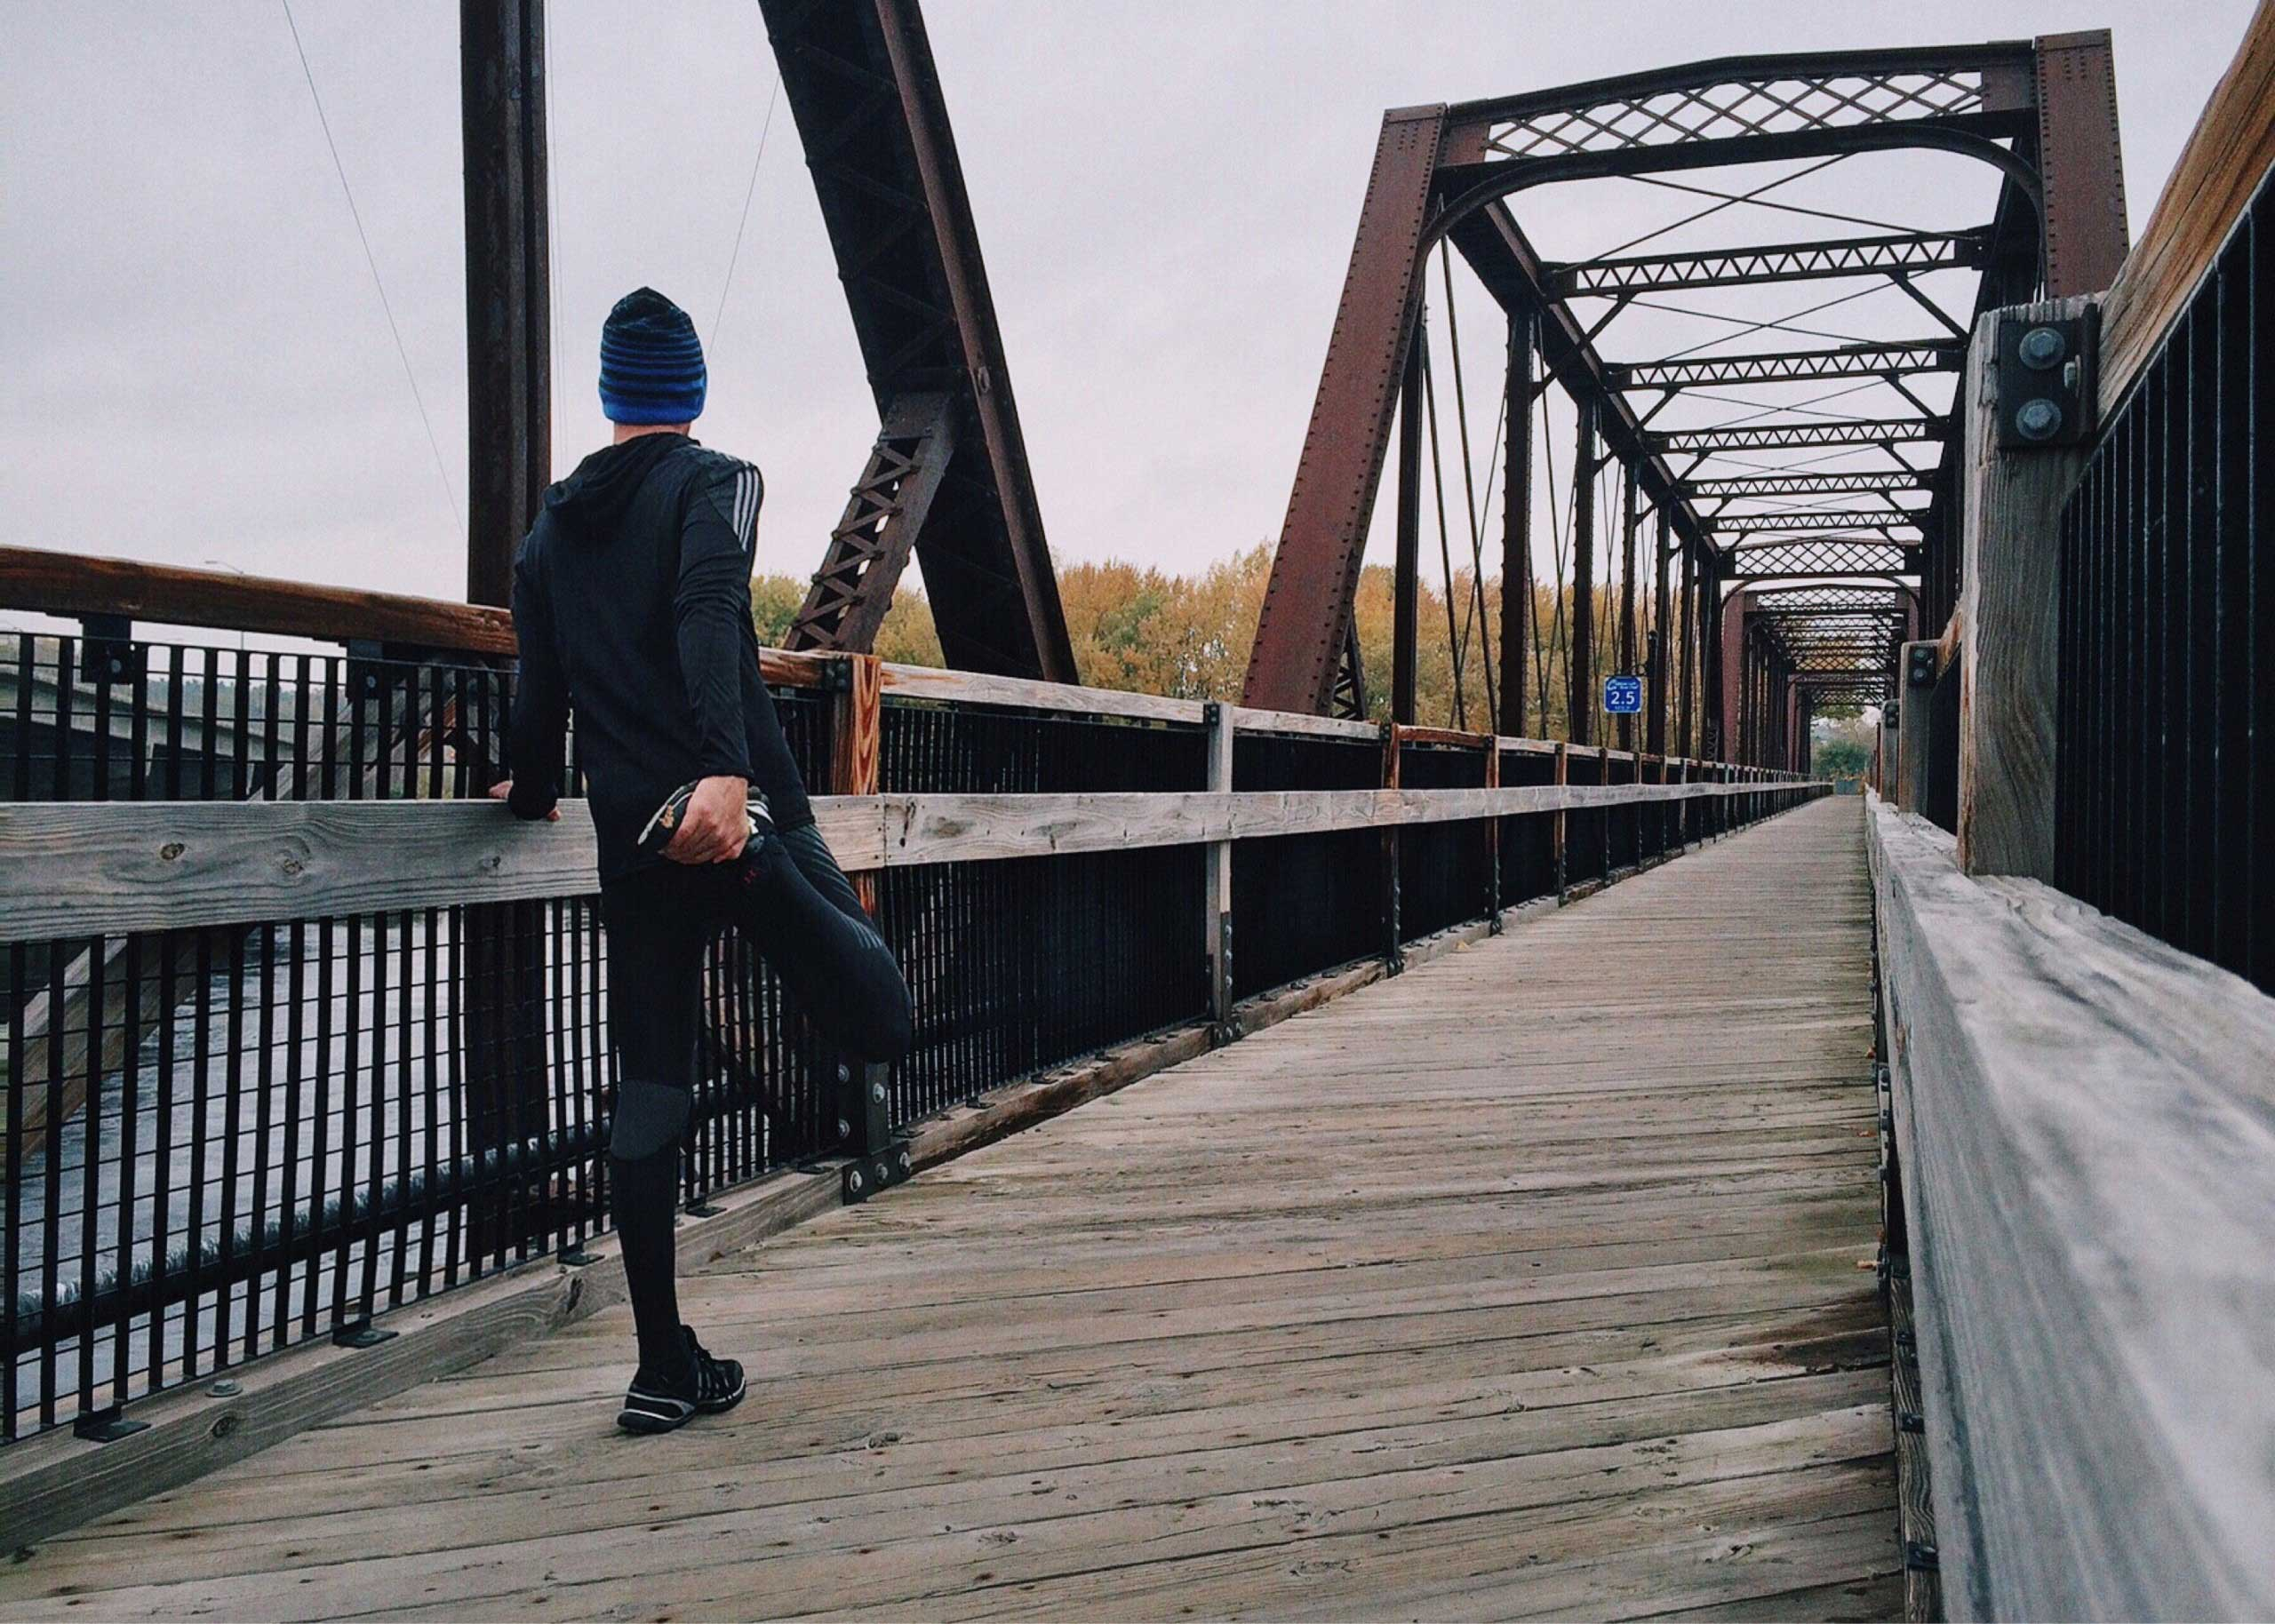 Runner stretching on a bridge